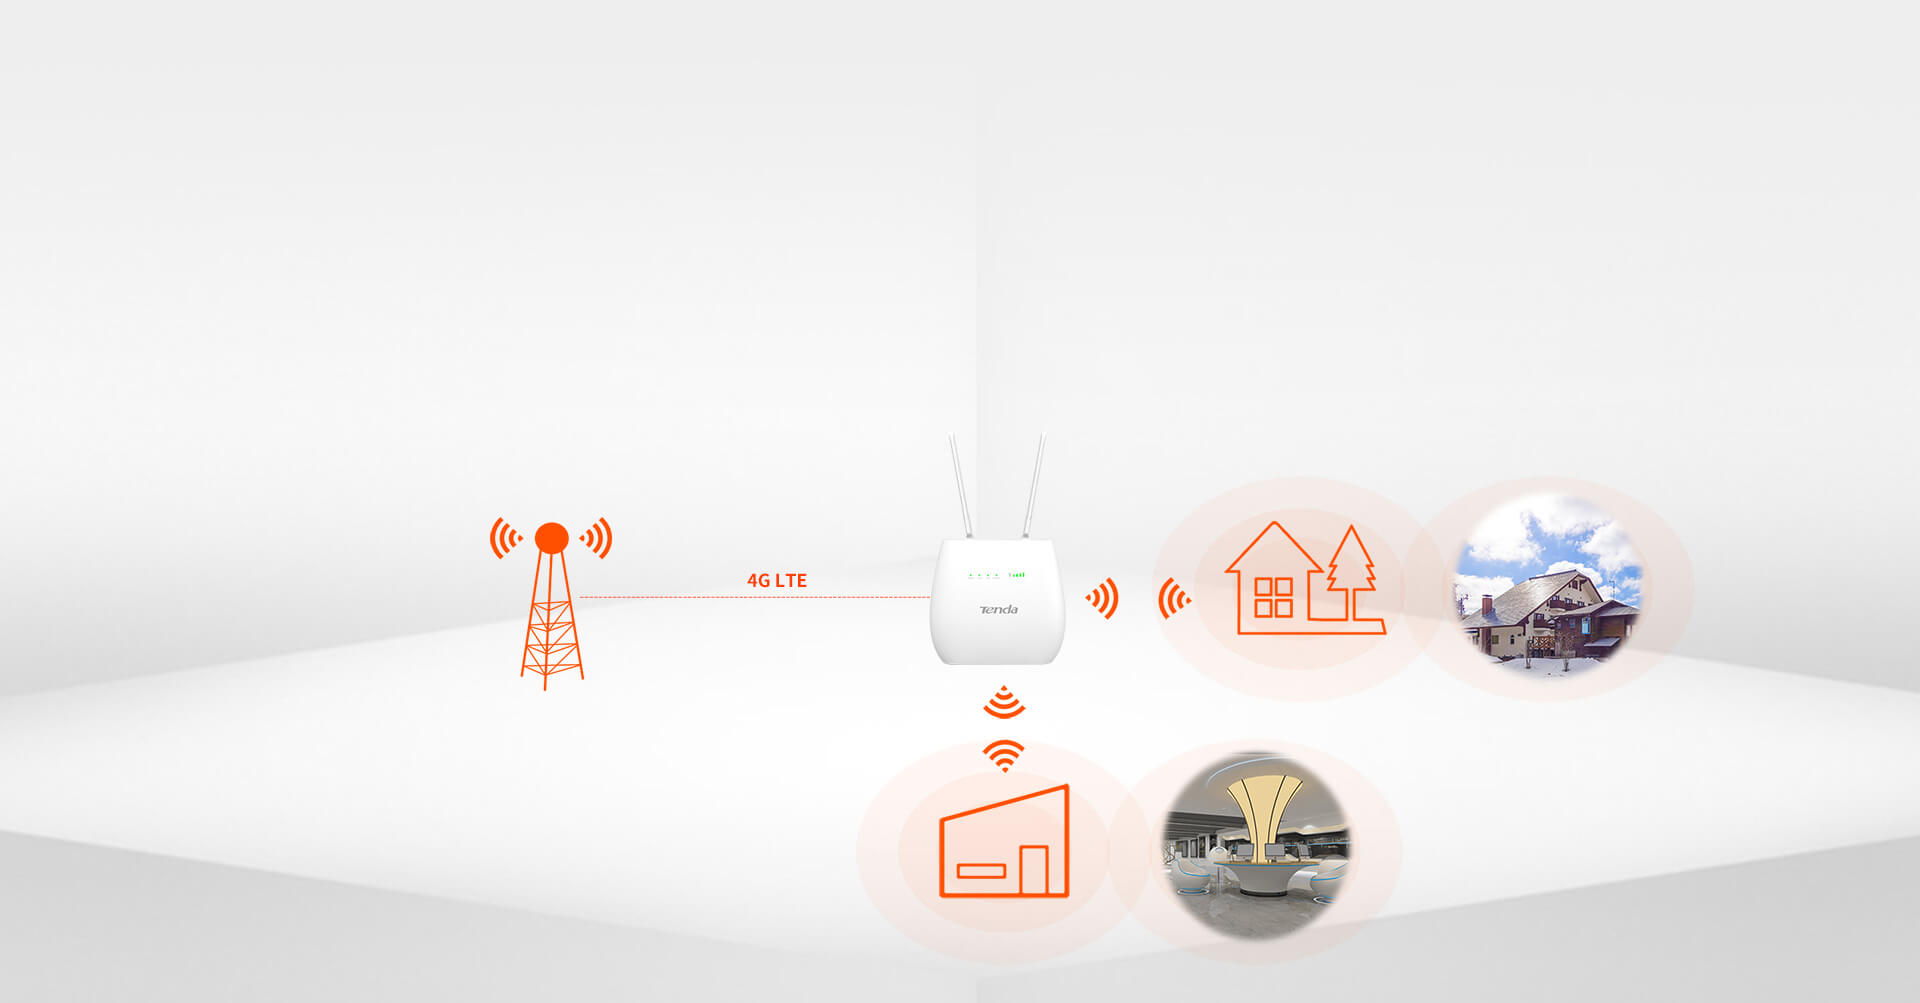 Tenda 4G680 4G LTE Router แบบใส่ SIm